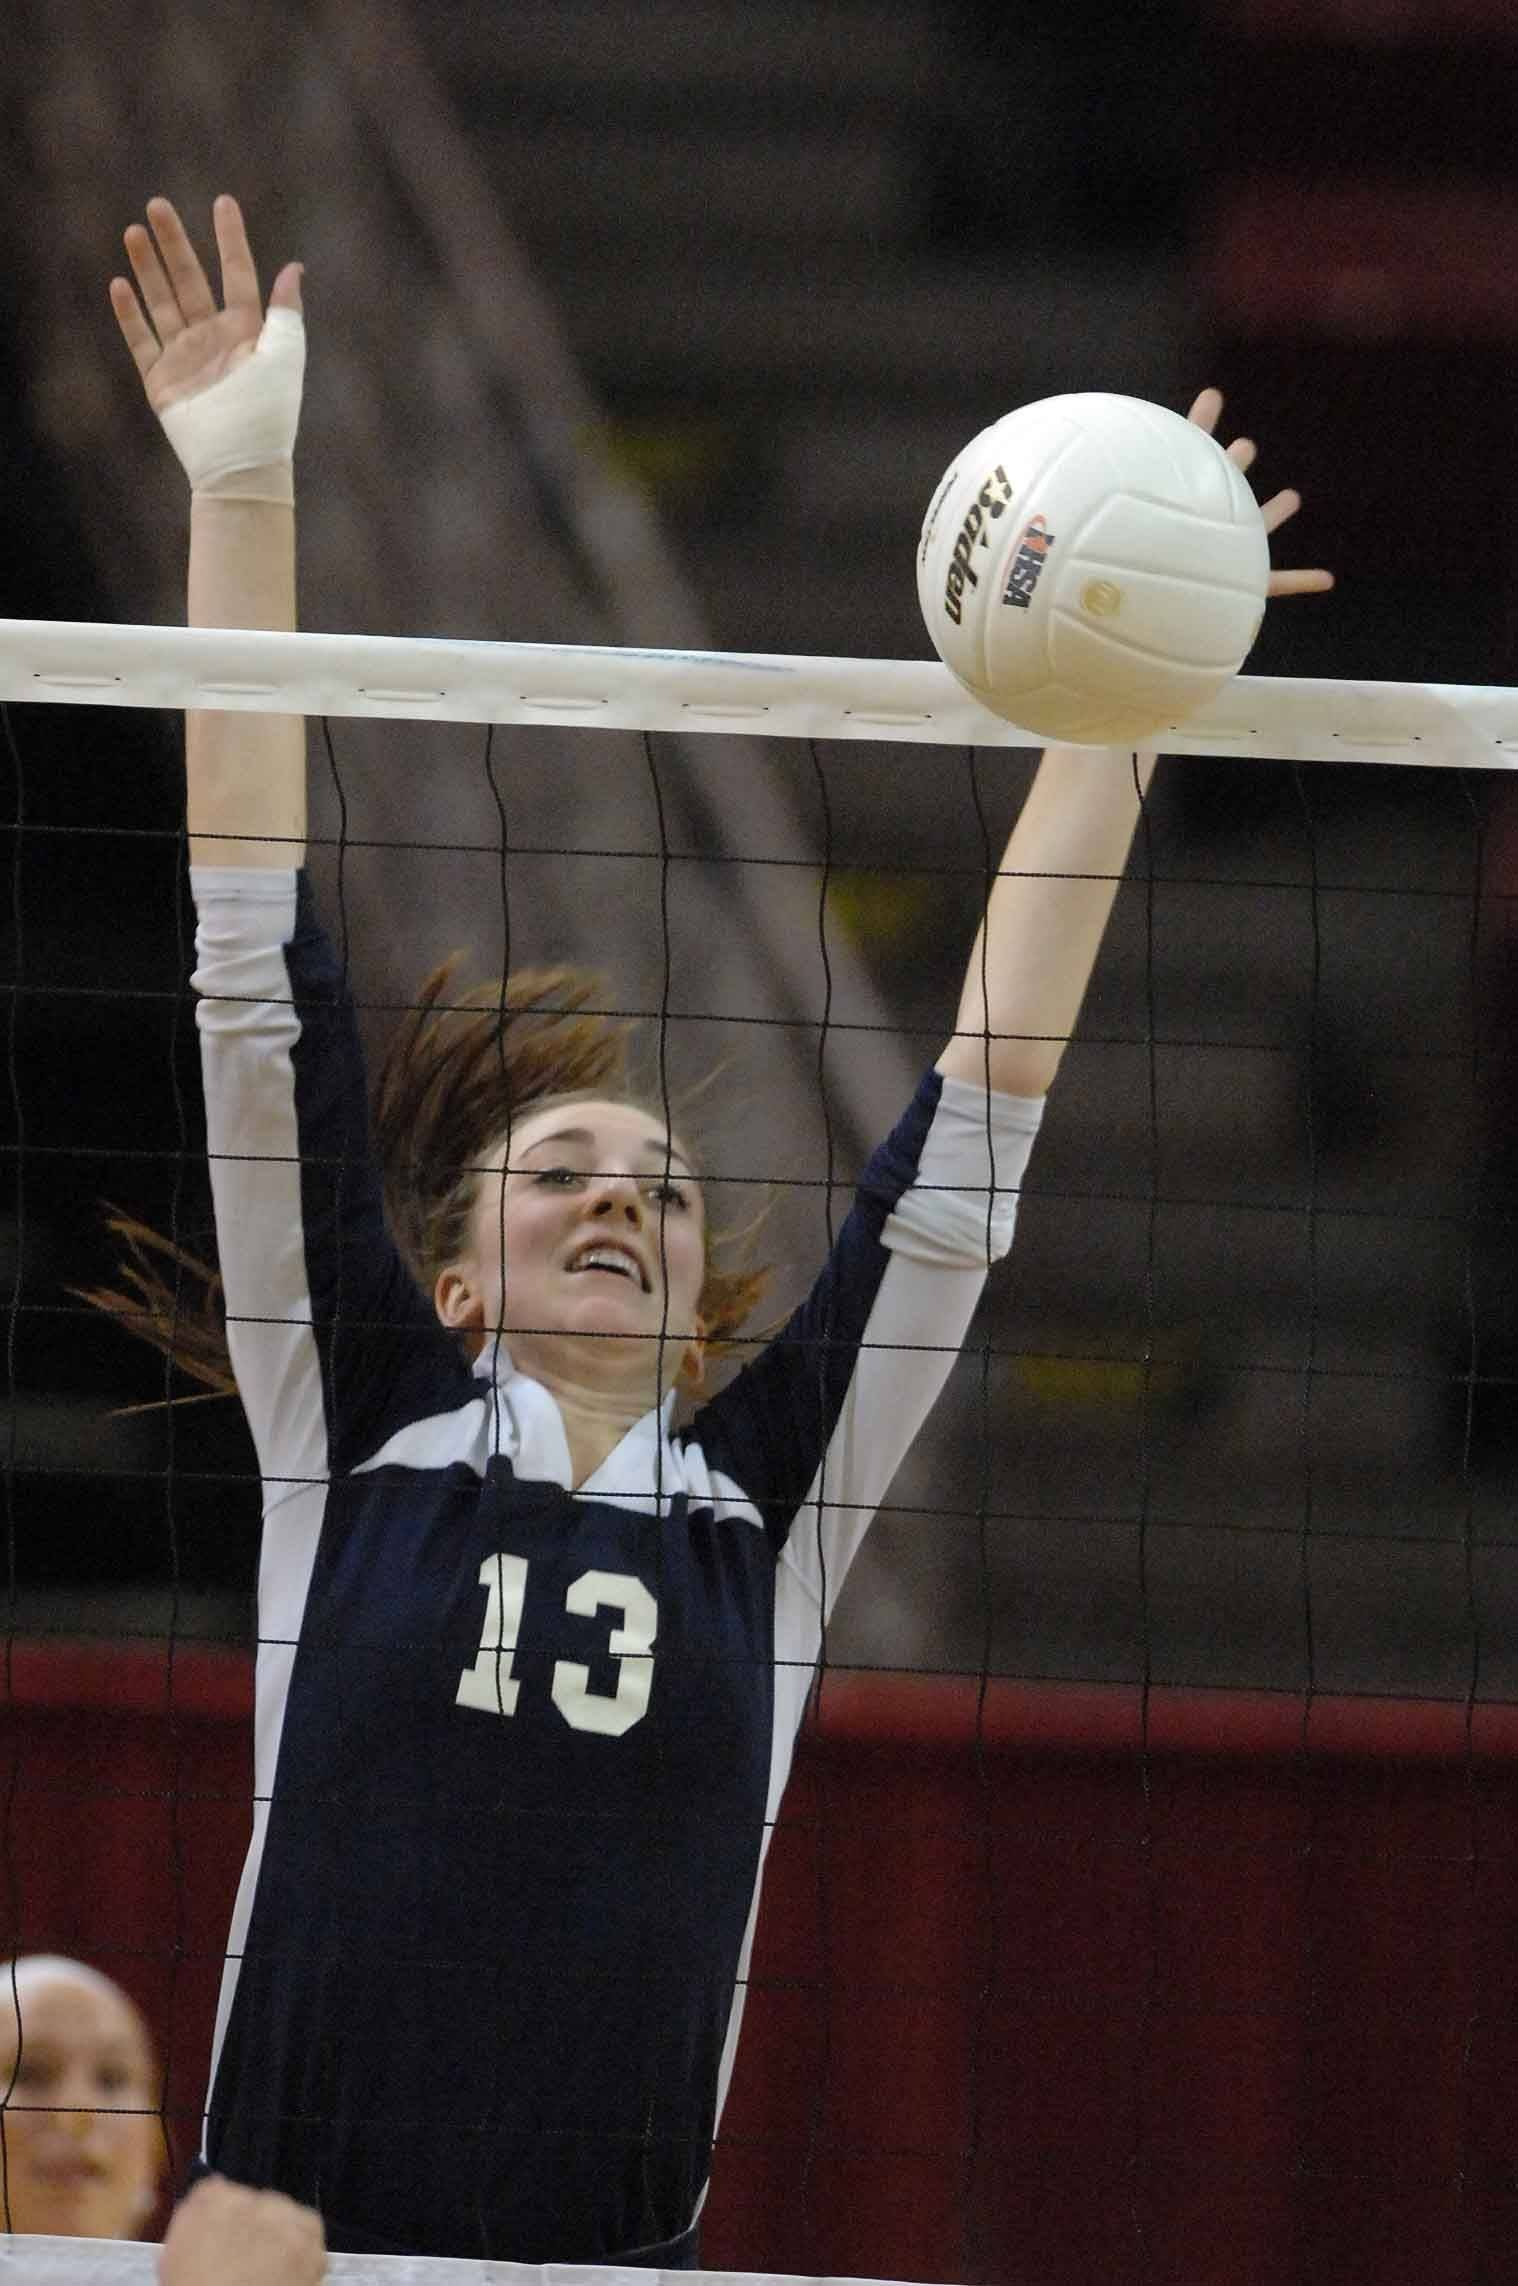 Sheila Wilhelmi of Cary goes up for a block during the Benet vs. Cary Class 4A volleyball championship in Normal Saturday.